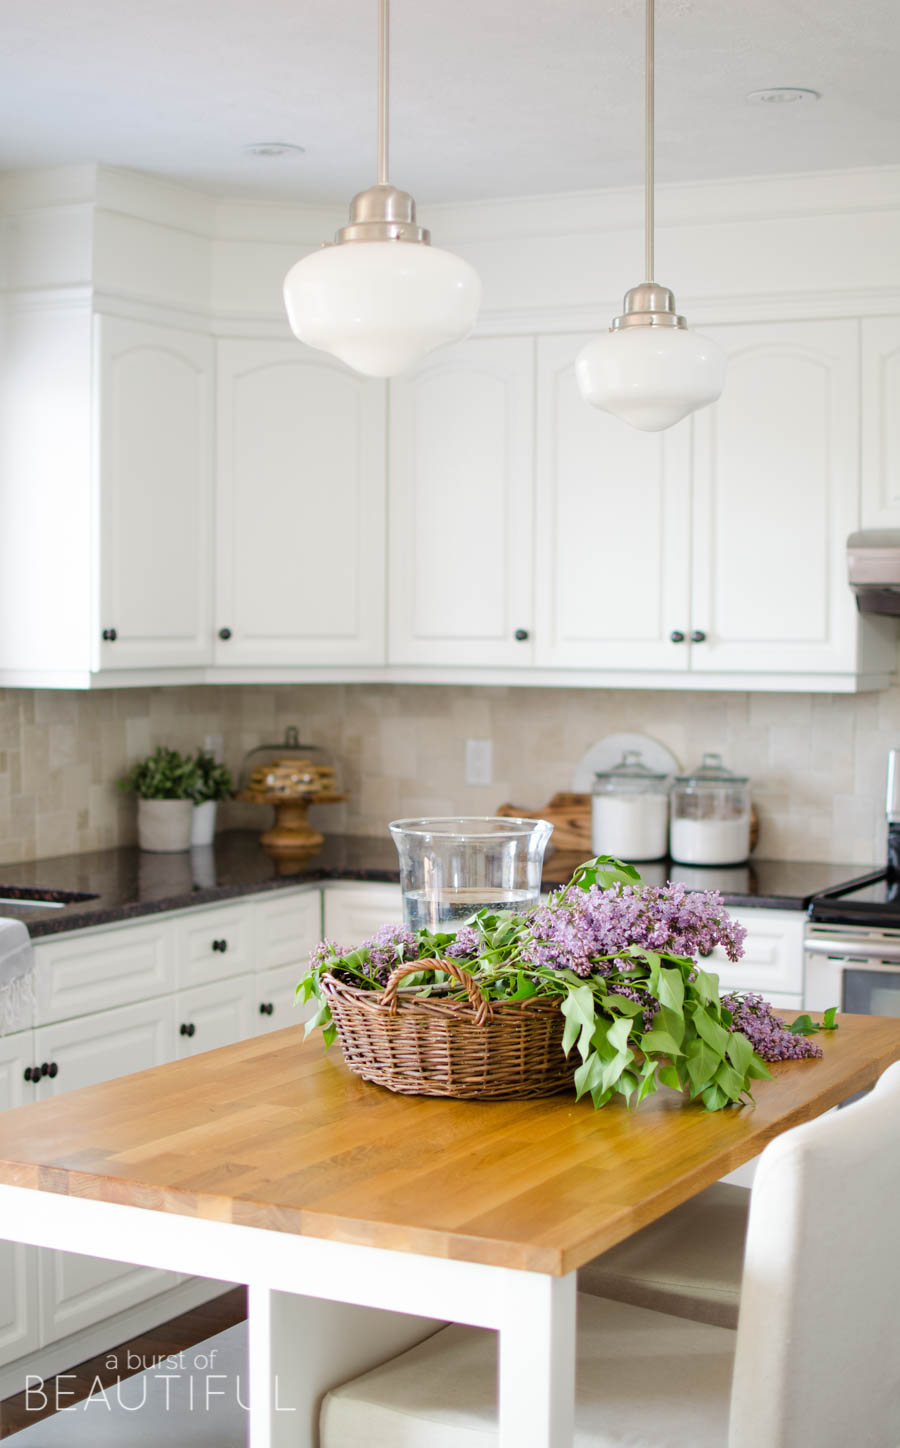 This beautiful modern farmhouse welcomes summer in the country with a fresh, light color palette of soft neutrals paired with plenty of natural wood tones, all highlighted with the simple pleasures of summertime - fresh flowers. The newly renovated mudroom, classic white kitchen and bright and airy open concept living and dining room make this the perfect family home. See all of the inspiring photos, plus 33 blogger home tours in this incredible Summer Home Tour series at www.aburstofbeautiful.com.